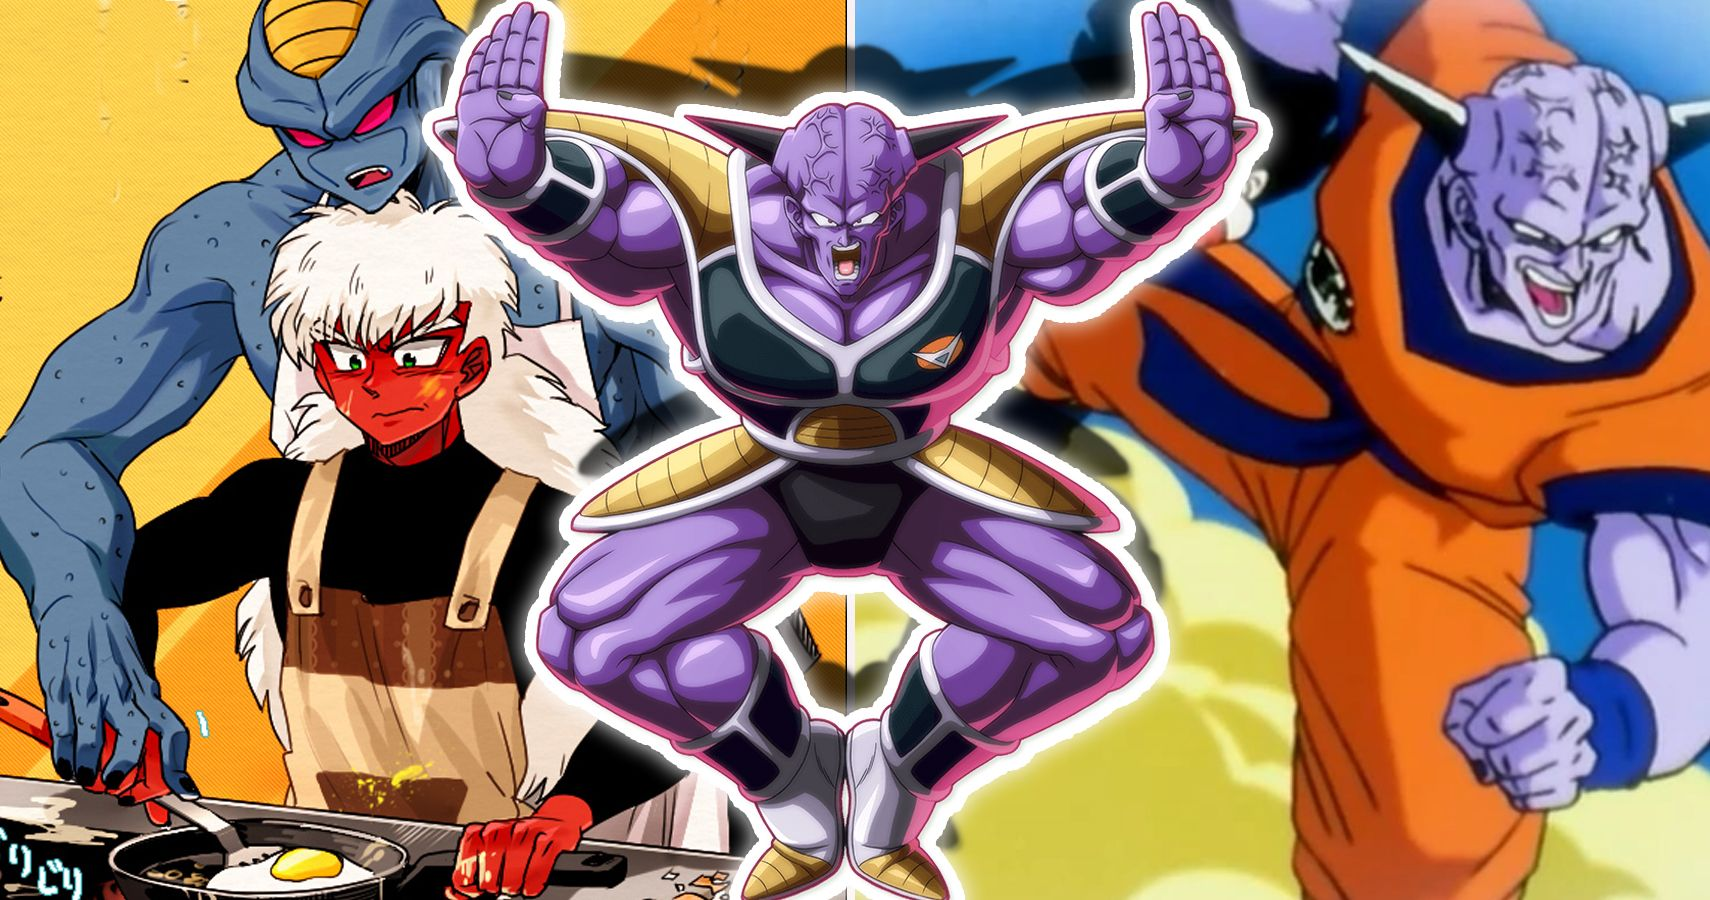 25 Crazy Things You Didnt Know About The Ginyu Force From Dragon Ball Z